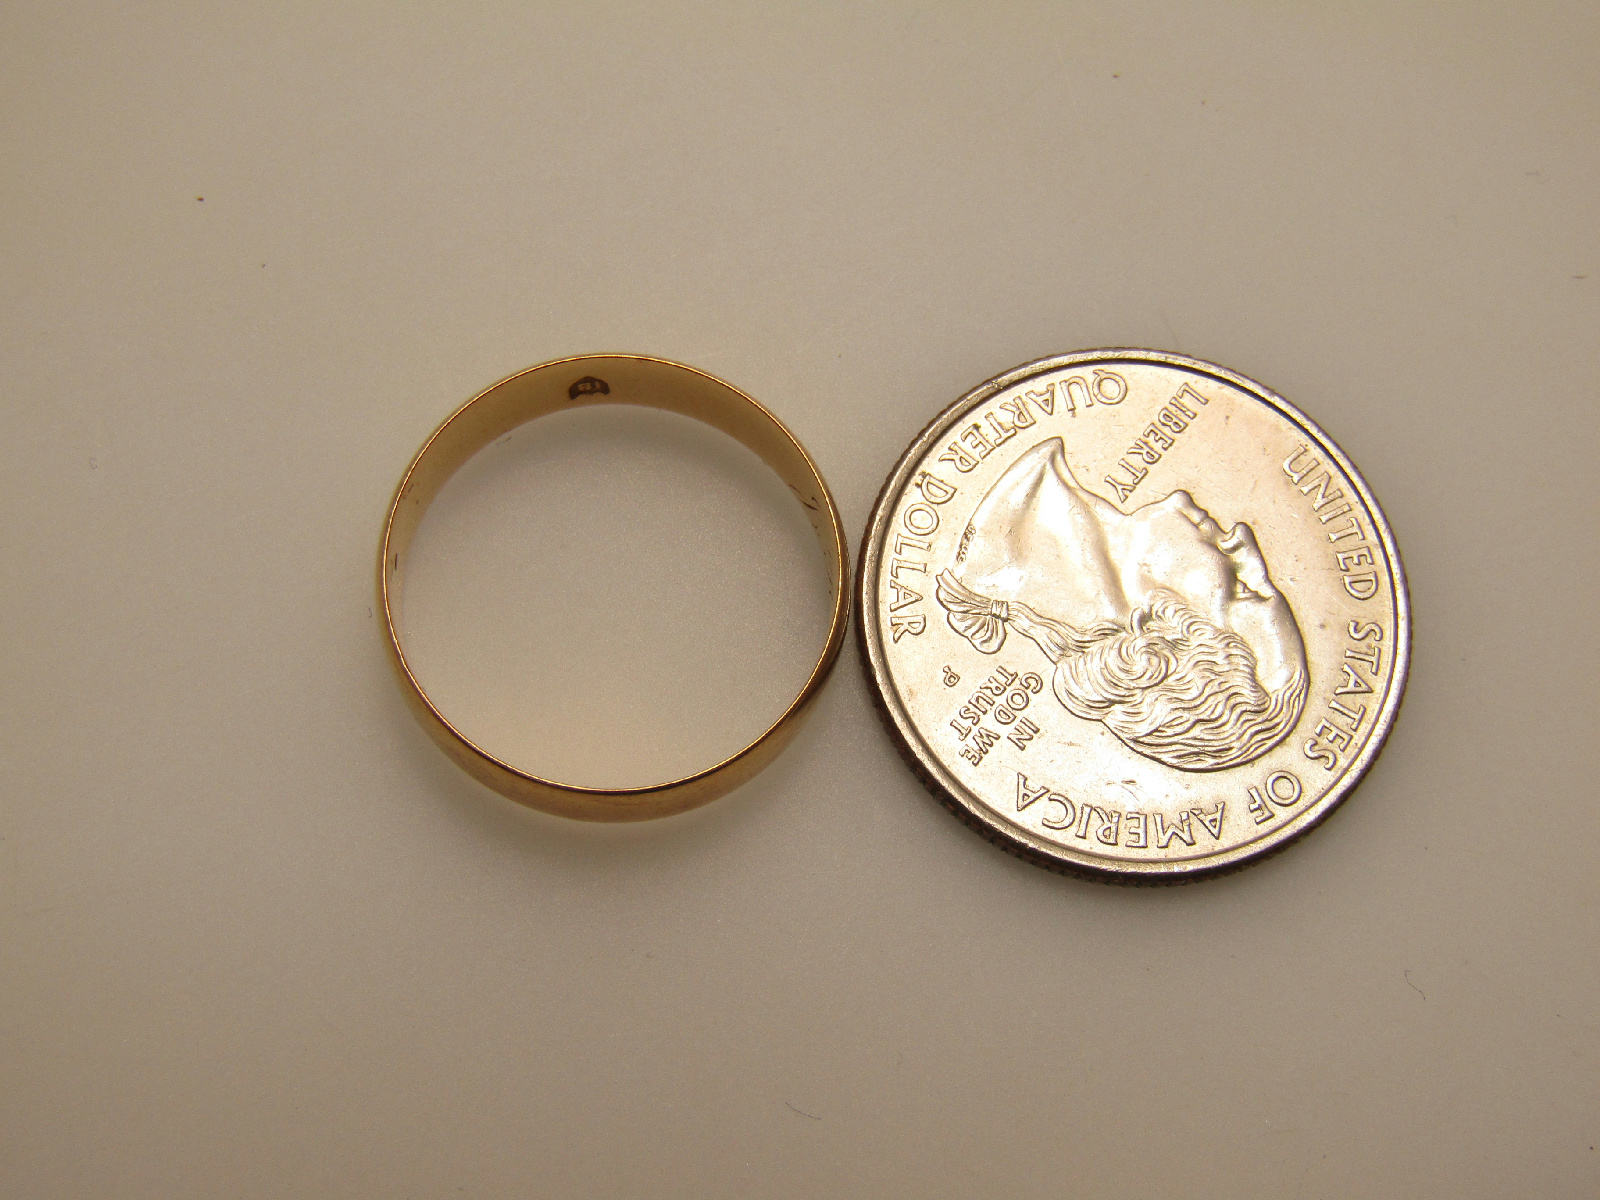 18k yellow gold jewelry wedding band ring simple engraved